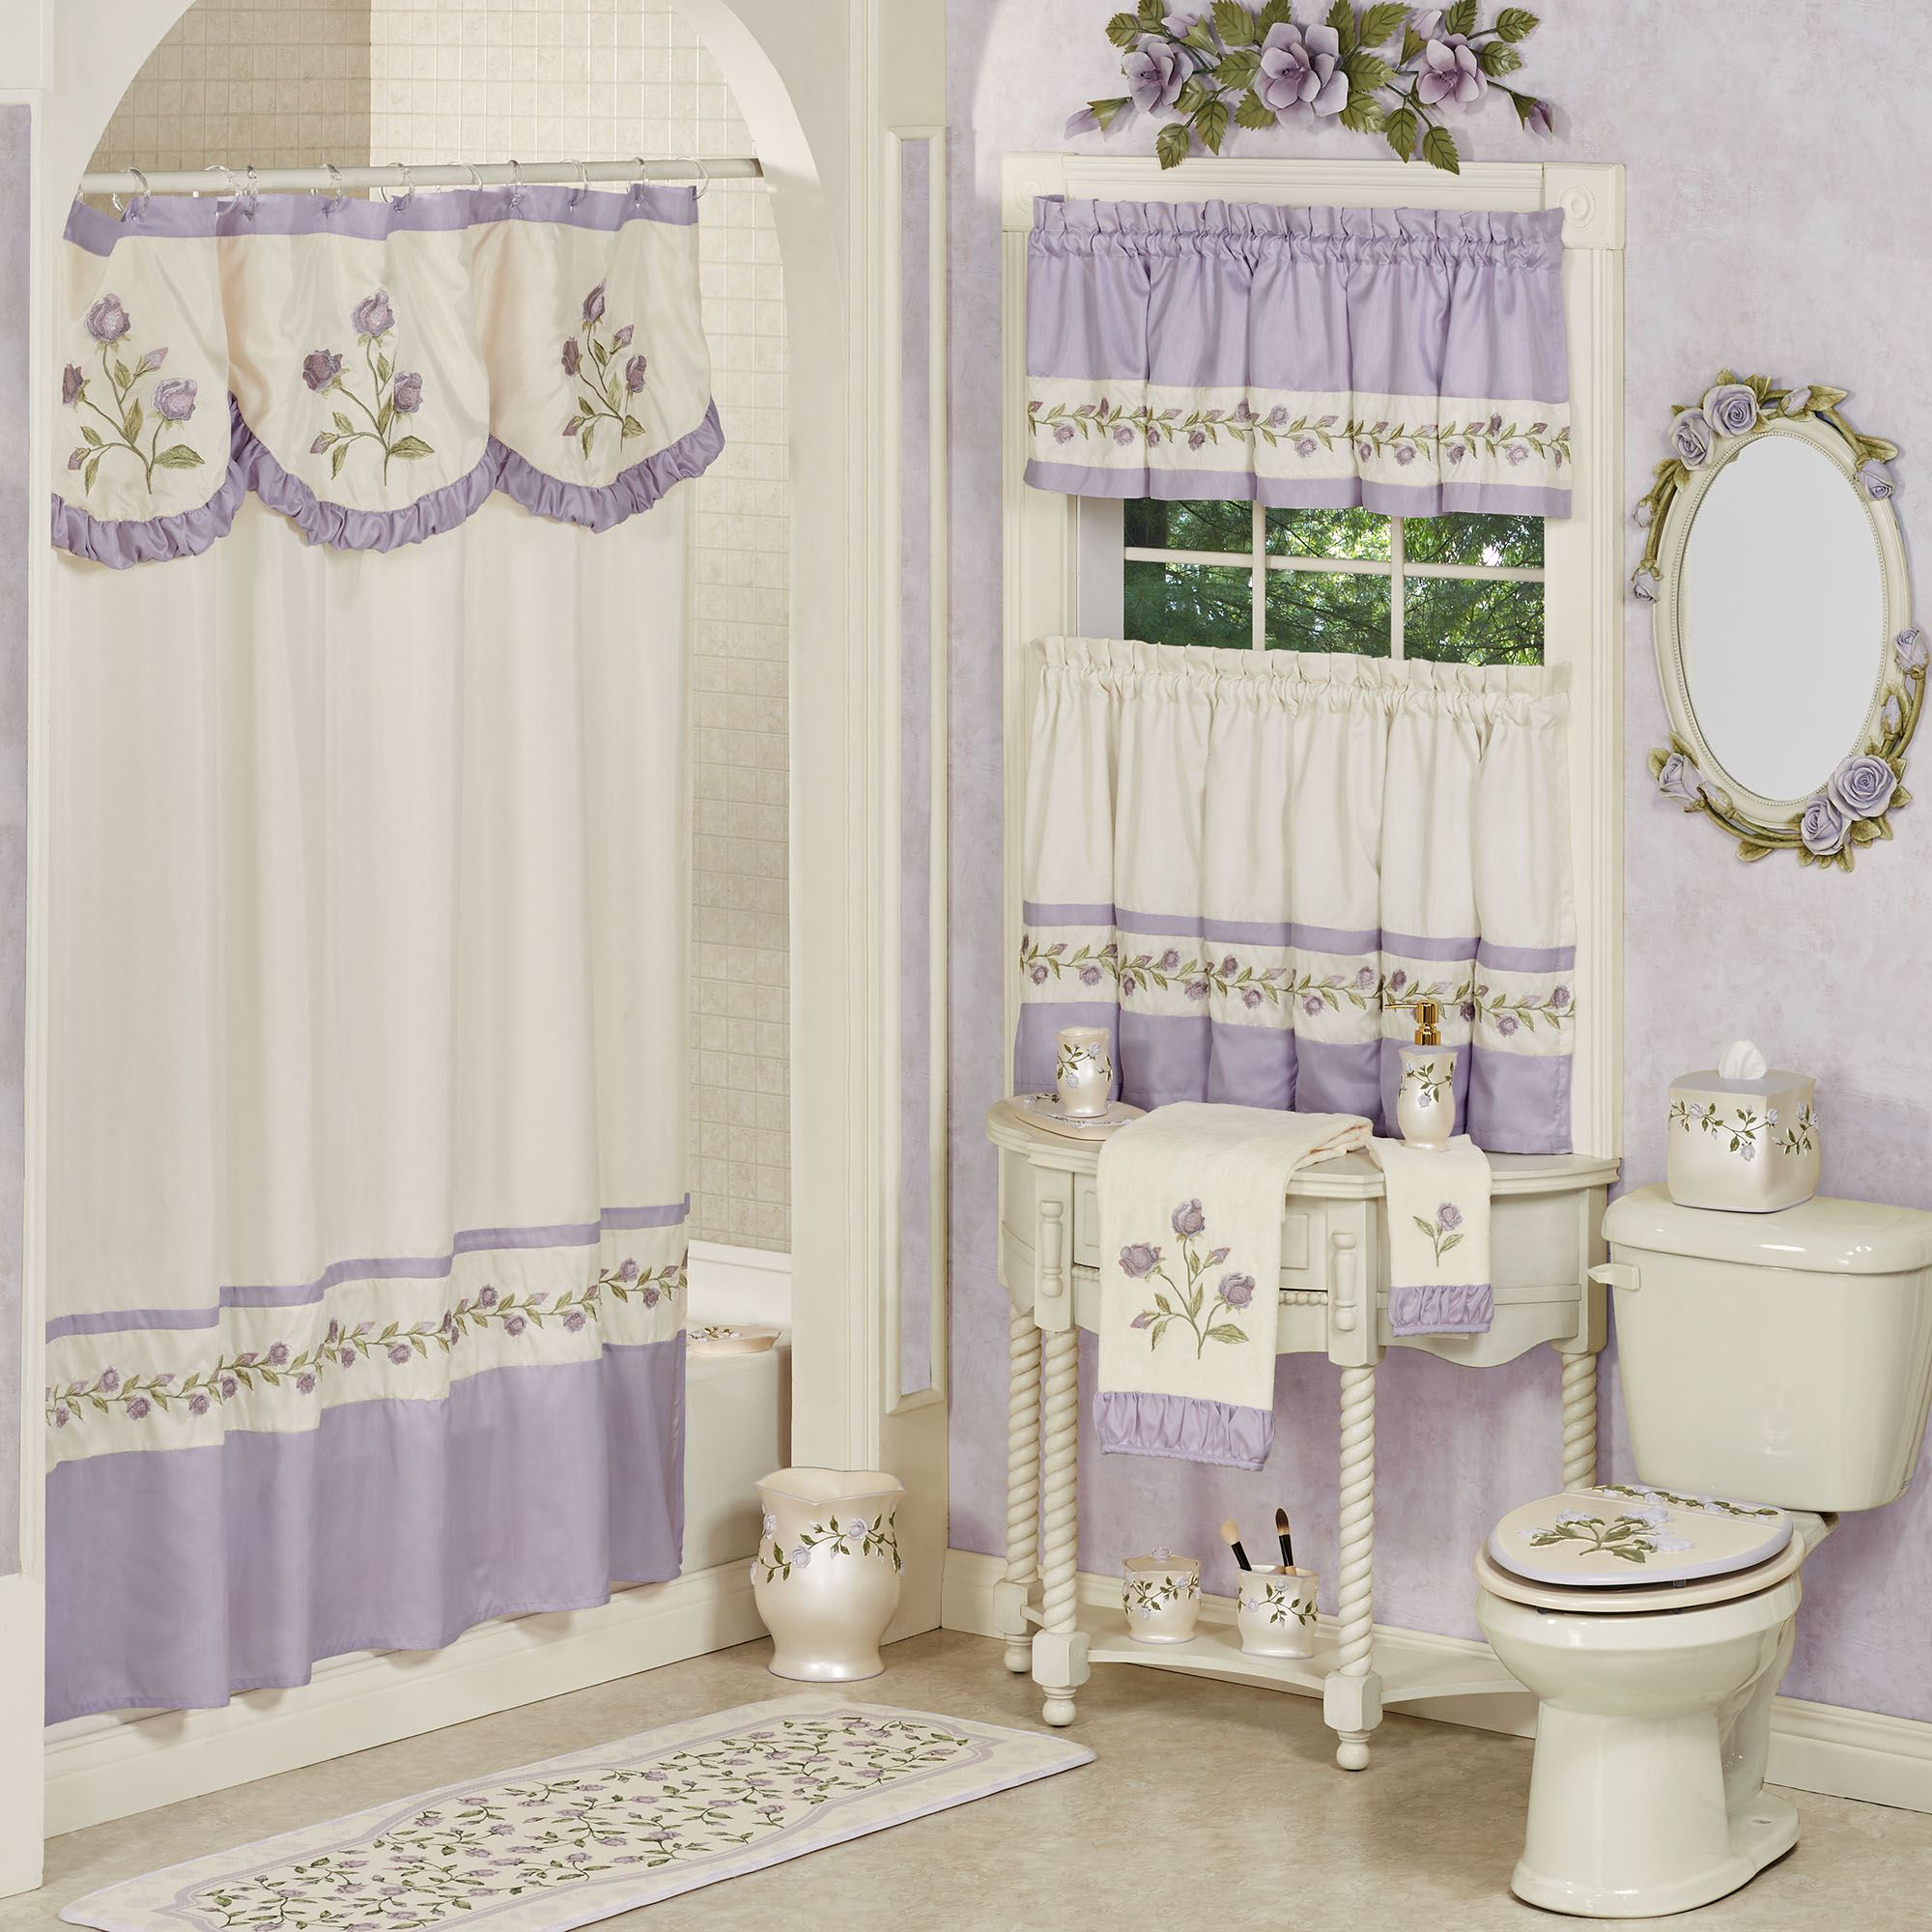 Bathroom Accessories Sets Sale